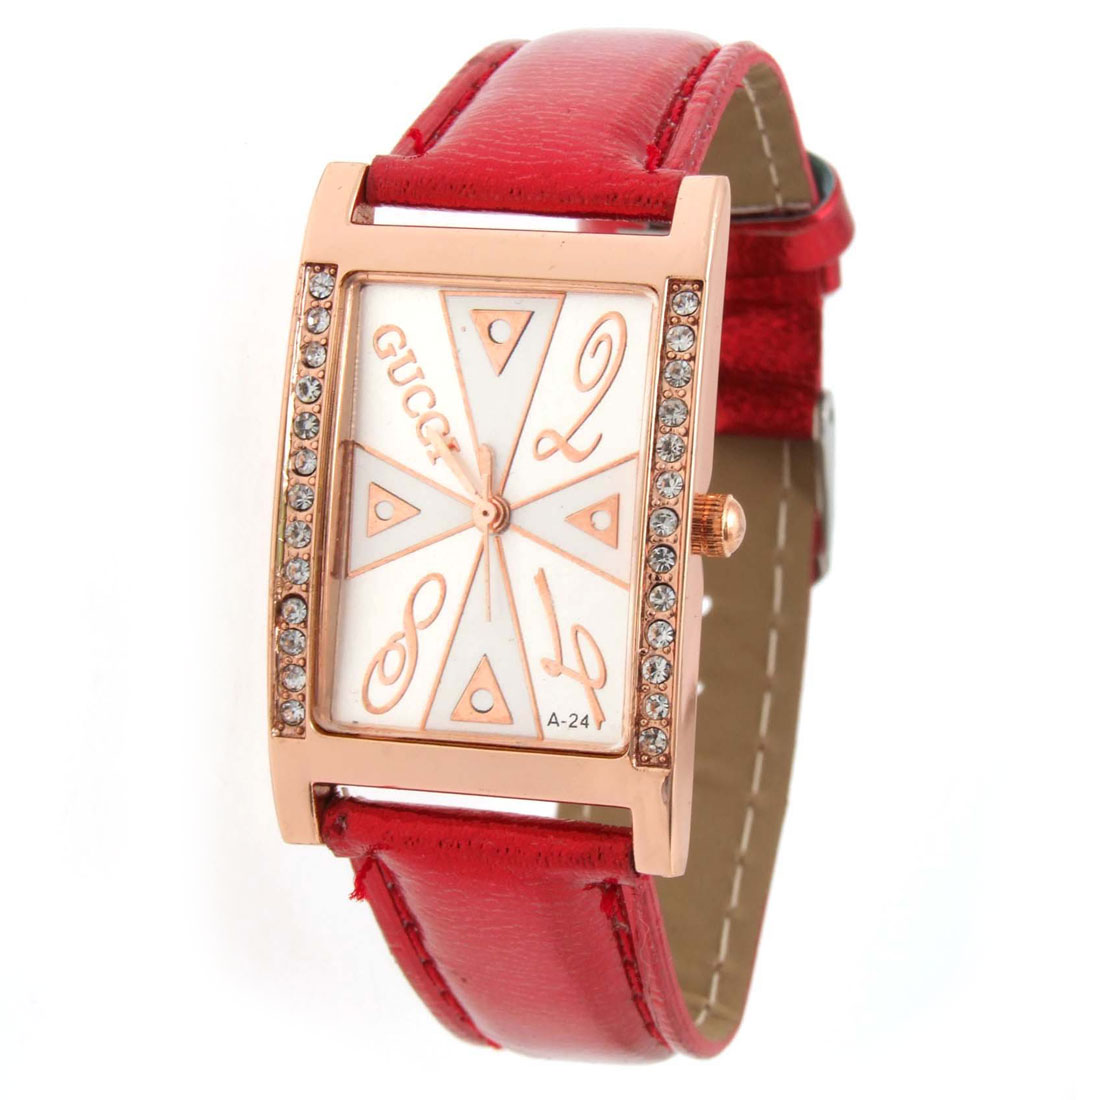 Fashion Jewelry Red Faux Leather Wrist Quartz Watch - Inactive